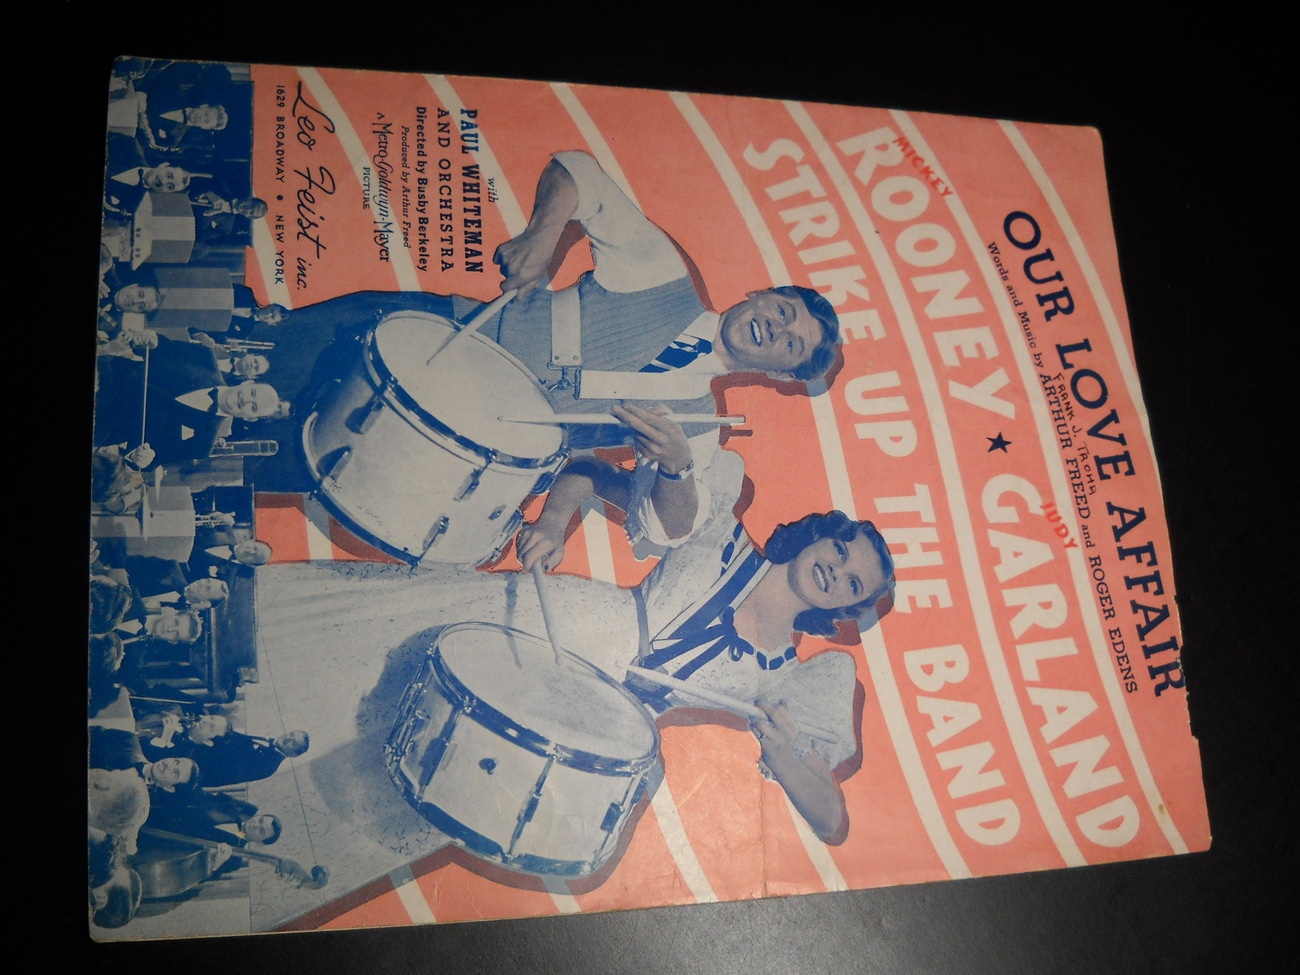 Sheet_music_our_love_affair_from_strike_up_the_band_judy_garland_mickey_rooney__08